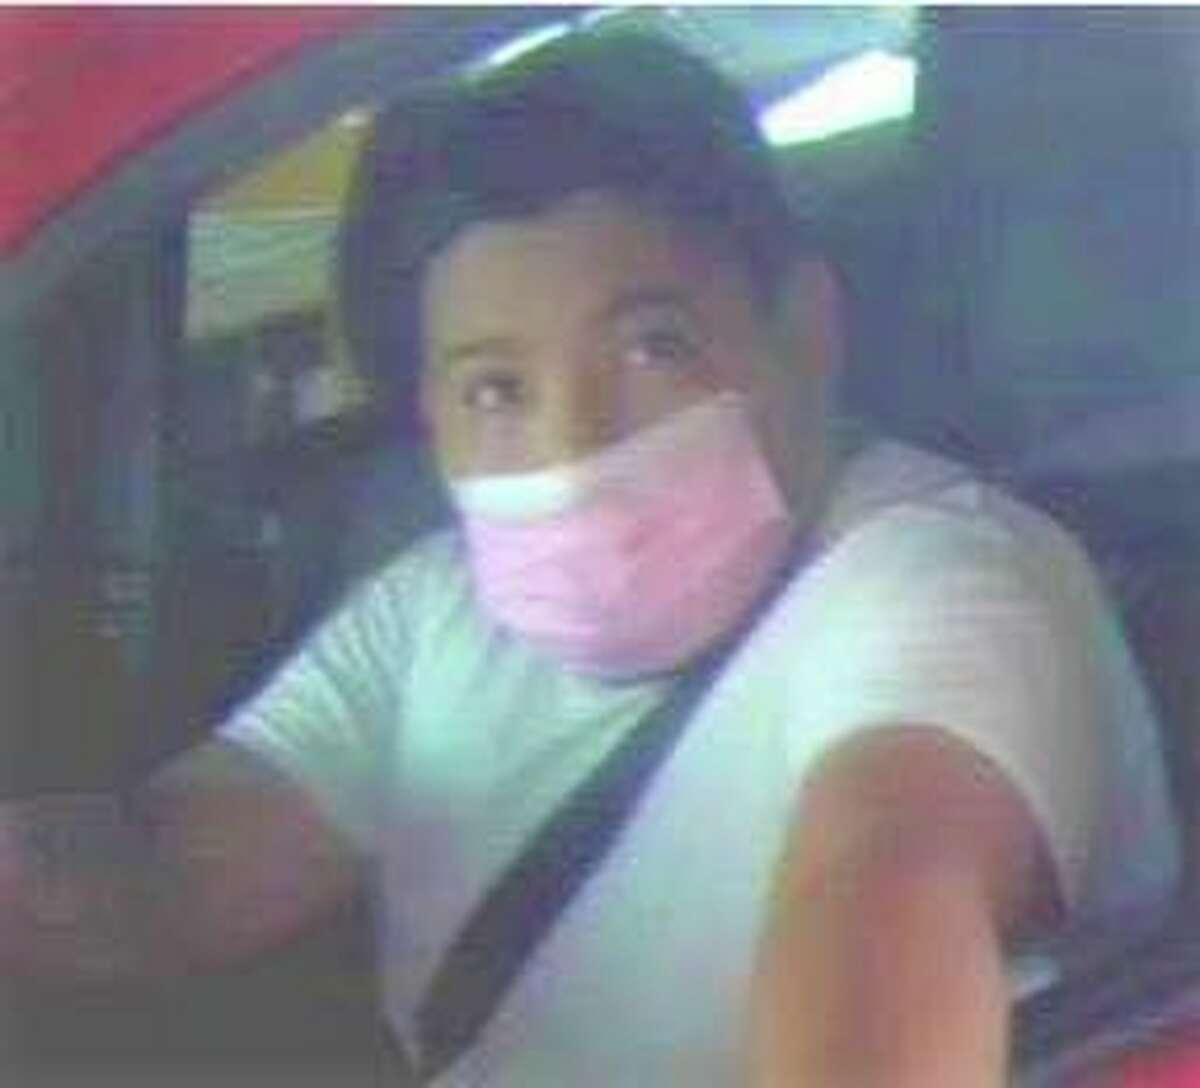 Laredo police said this man is linked to a theft of a vehicle case. To report his whereabouts, call police at 795-2800 or Laredo Crime Stoppers at 727-TIPS (8477).